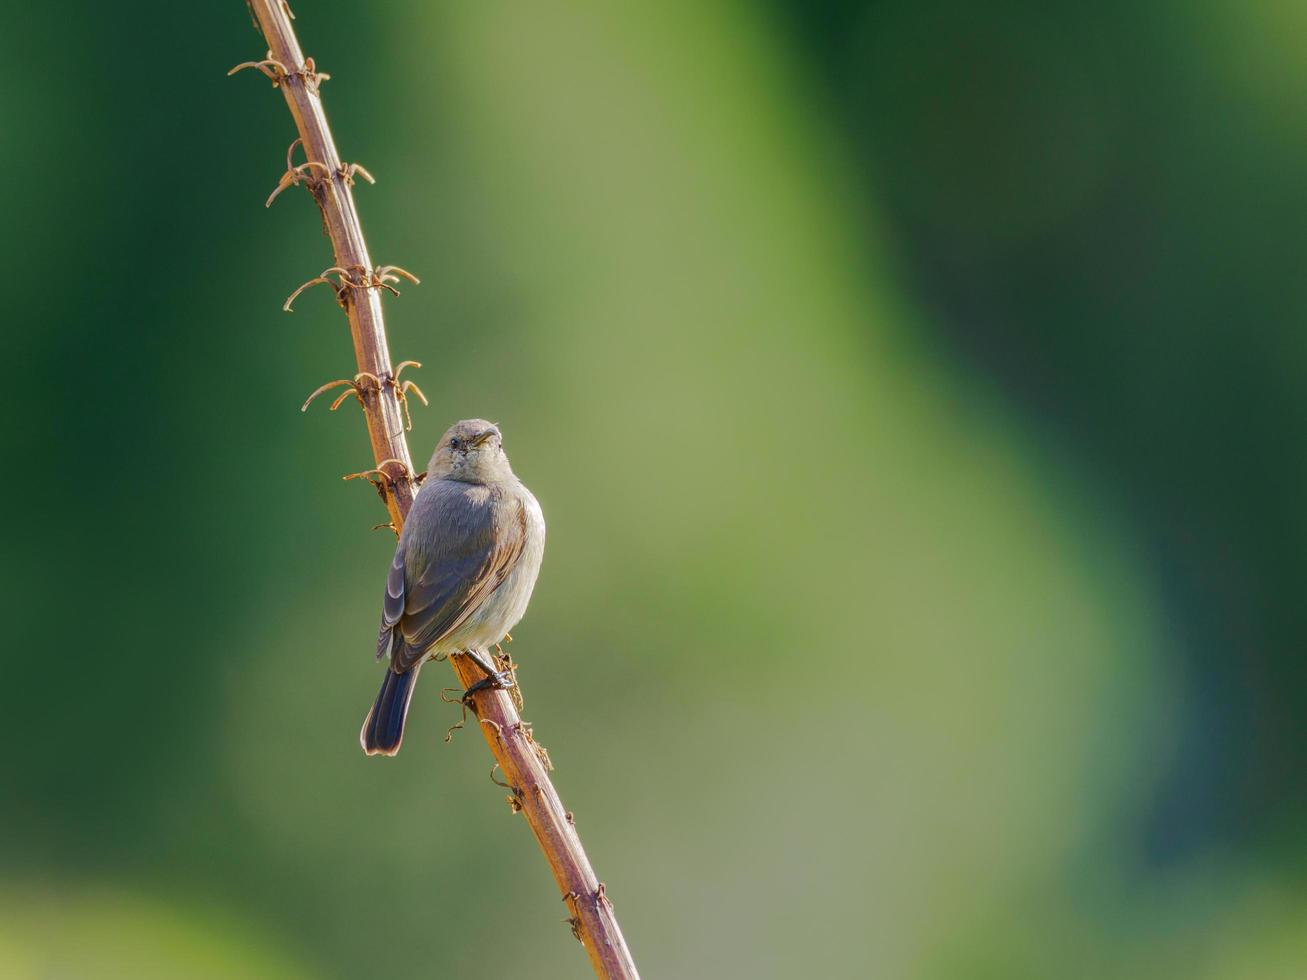 Gray bird perched on branch photo